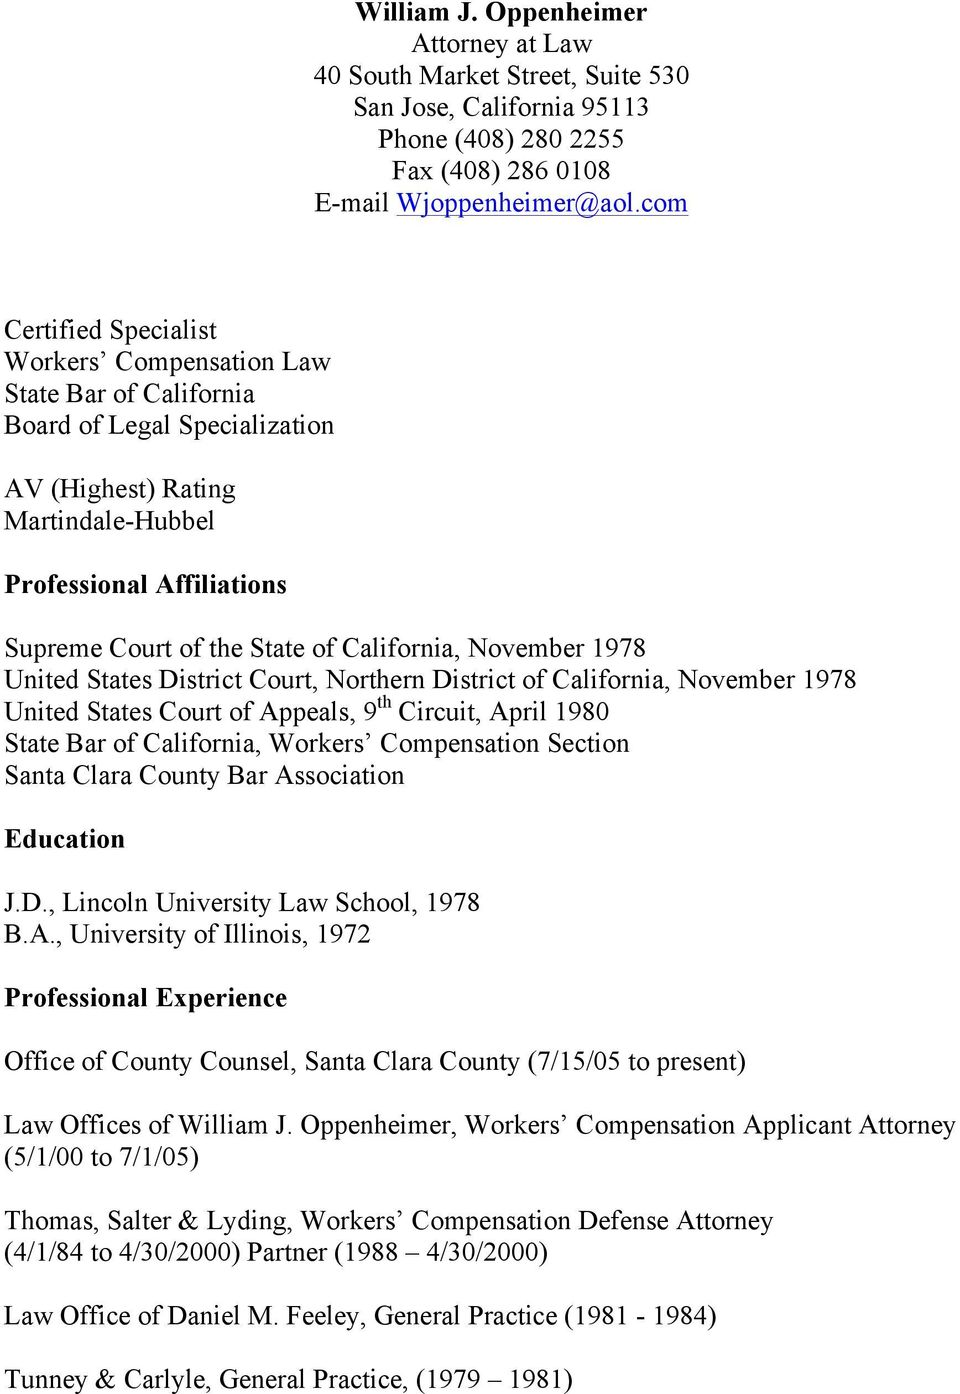 California, November 1978 United States District Court, Northern District of California, November 1978 United States Court of Appeals, 9 th Circuit, April 1980 State Bar of California, Workers